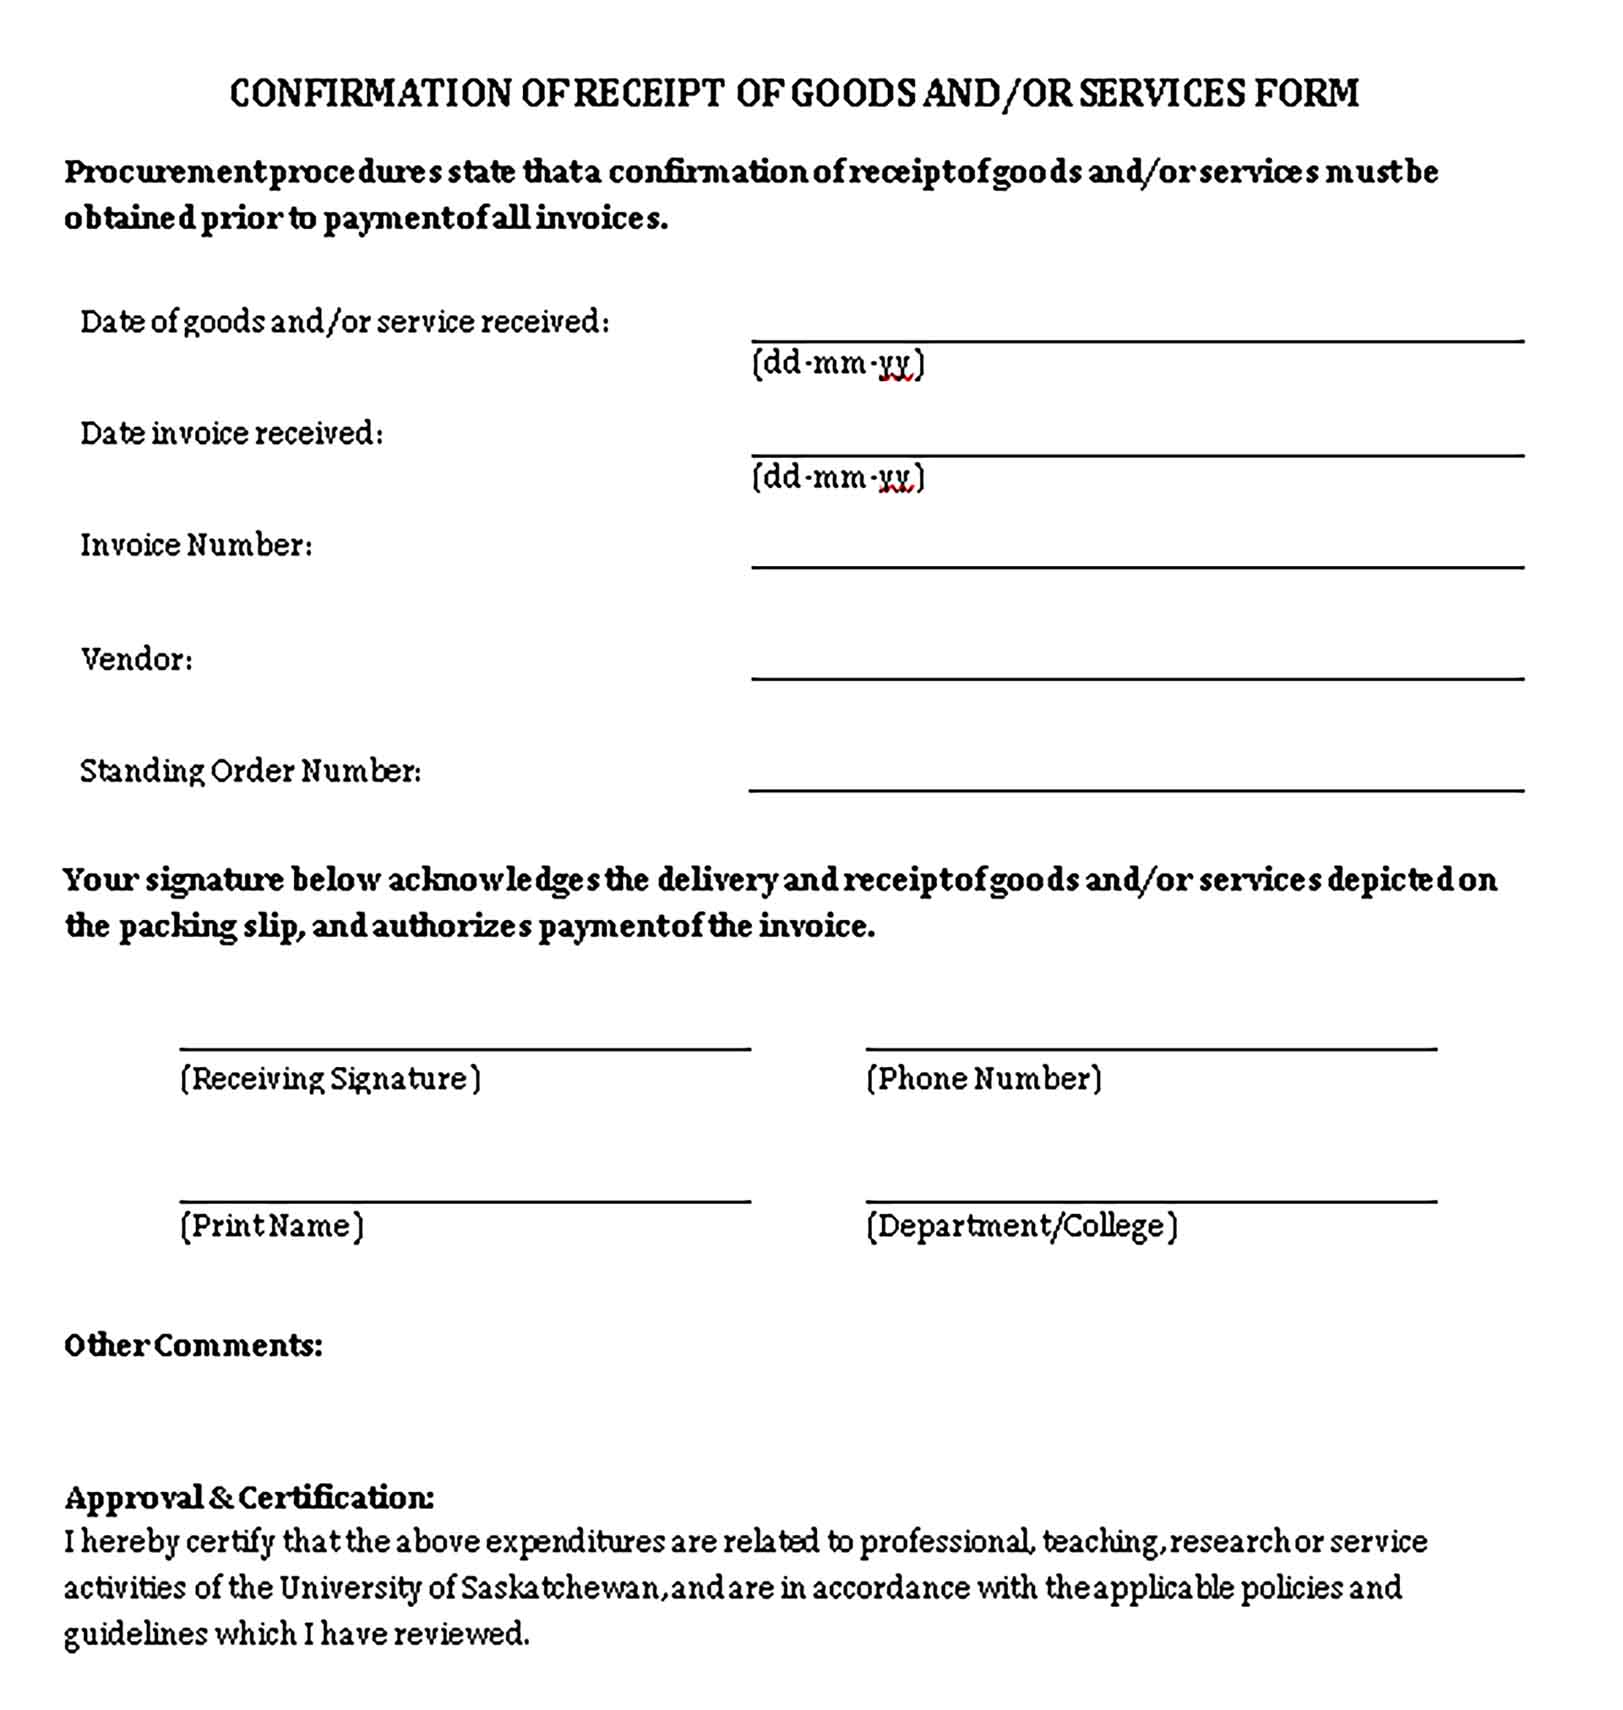 Sample Confirmation of Receipt of Goods and Services Form Templates 1